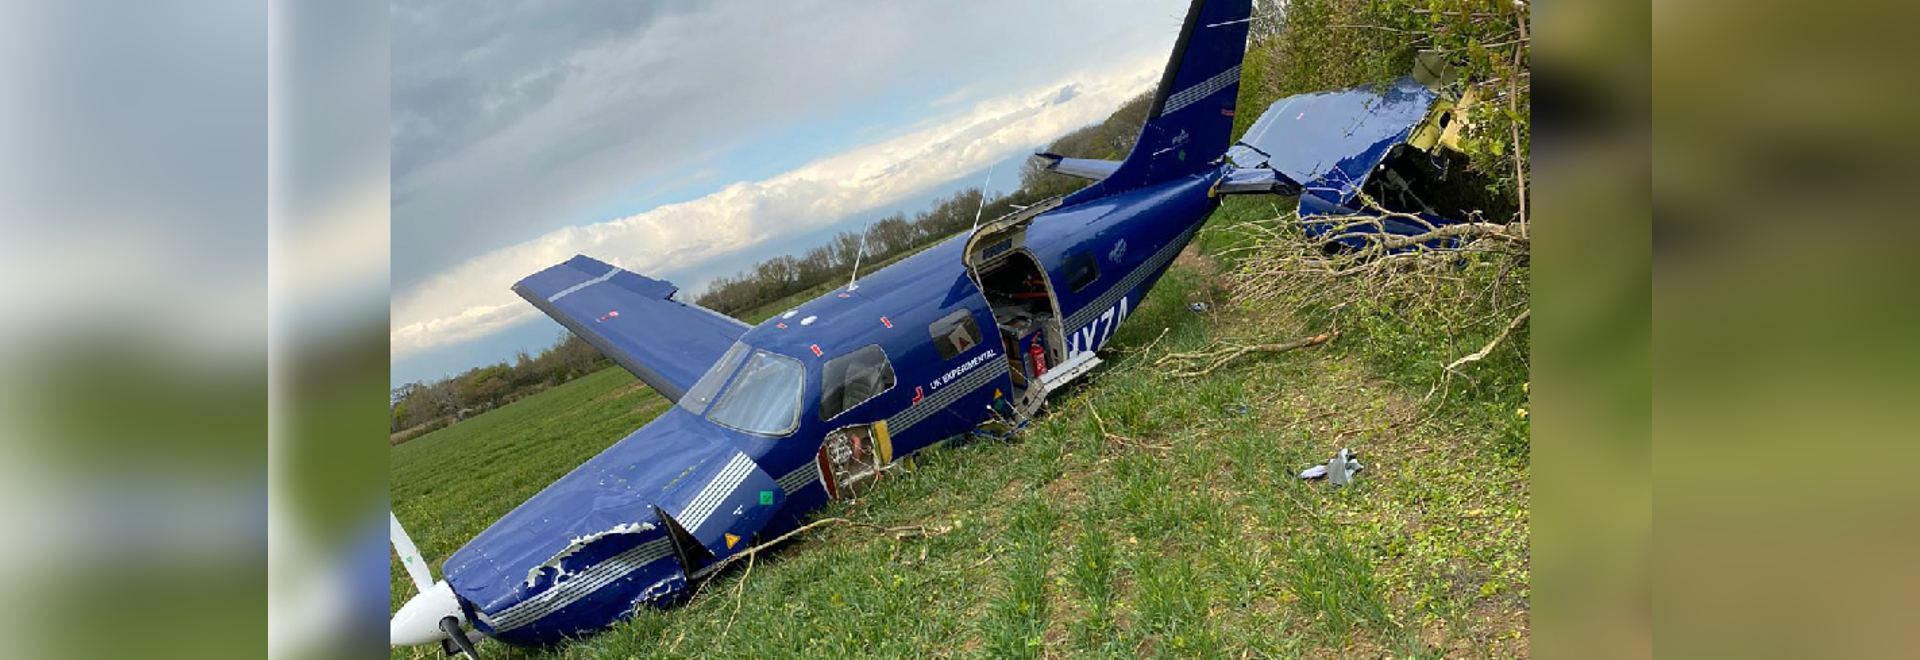 """ZeroAvia's research and development aircraft for its hydrogen propulsion system made an """"off-airport"""" landing according to the startup, the aircraft crashed just outside of Cranfield Airport."""